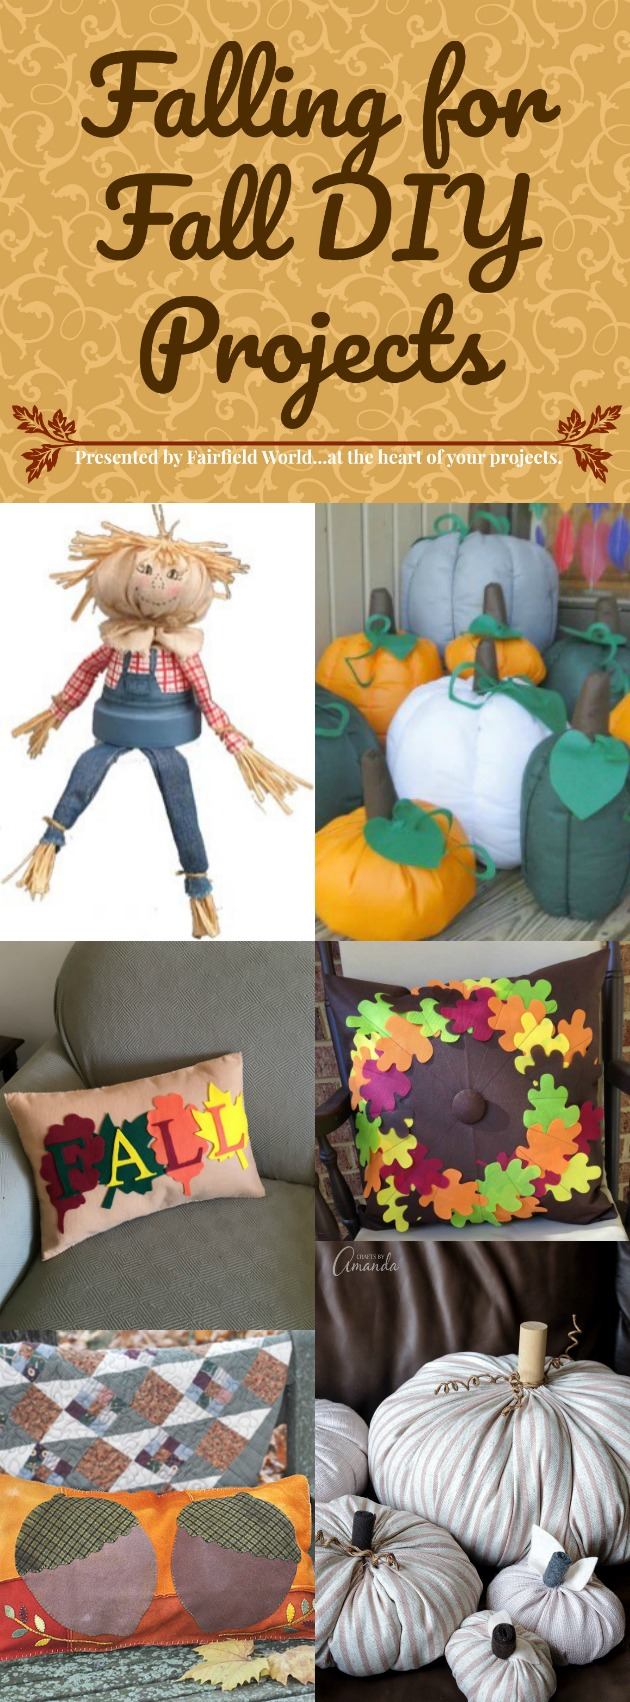 The days are shorter and the temperatures are dropping. What better excuse to stay inside and craft up a little something? There are so many fun projects to make to celebrate the season of fall. Here are a few of our favorite fall DIY themed projects.